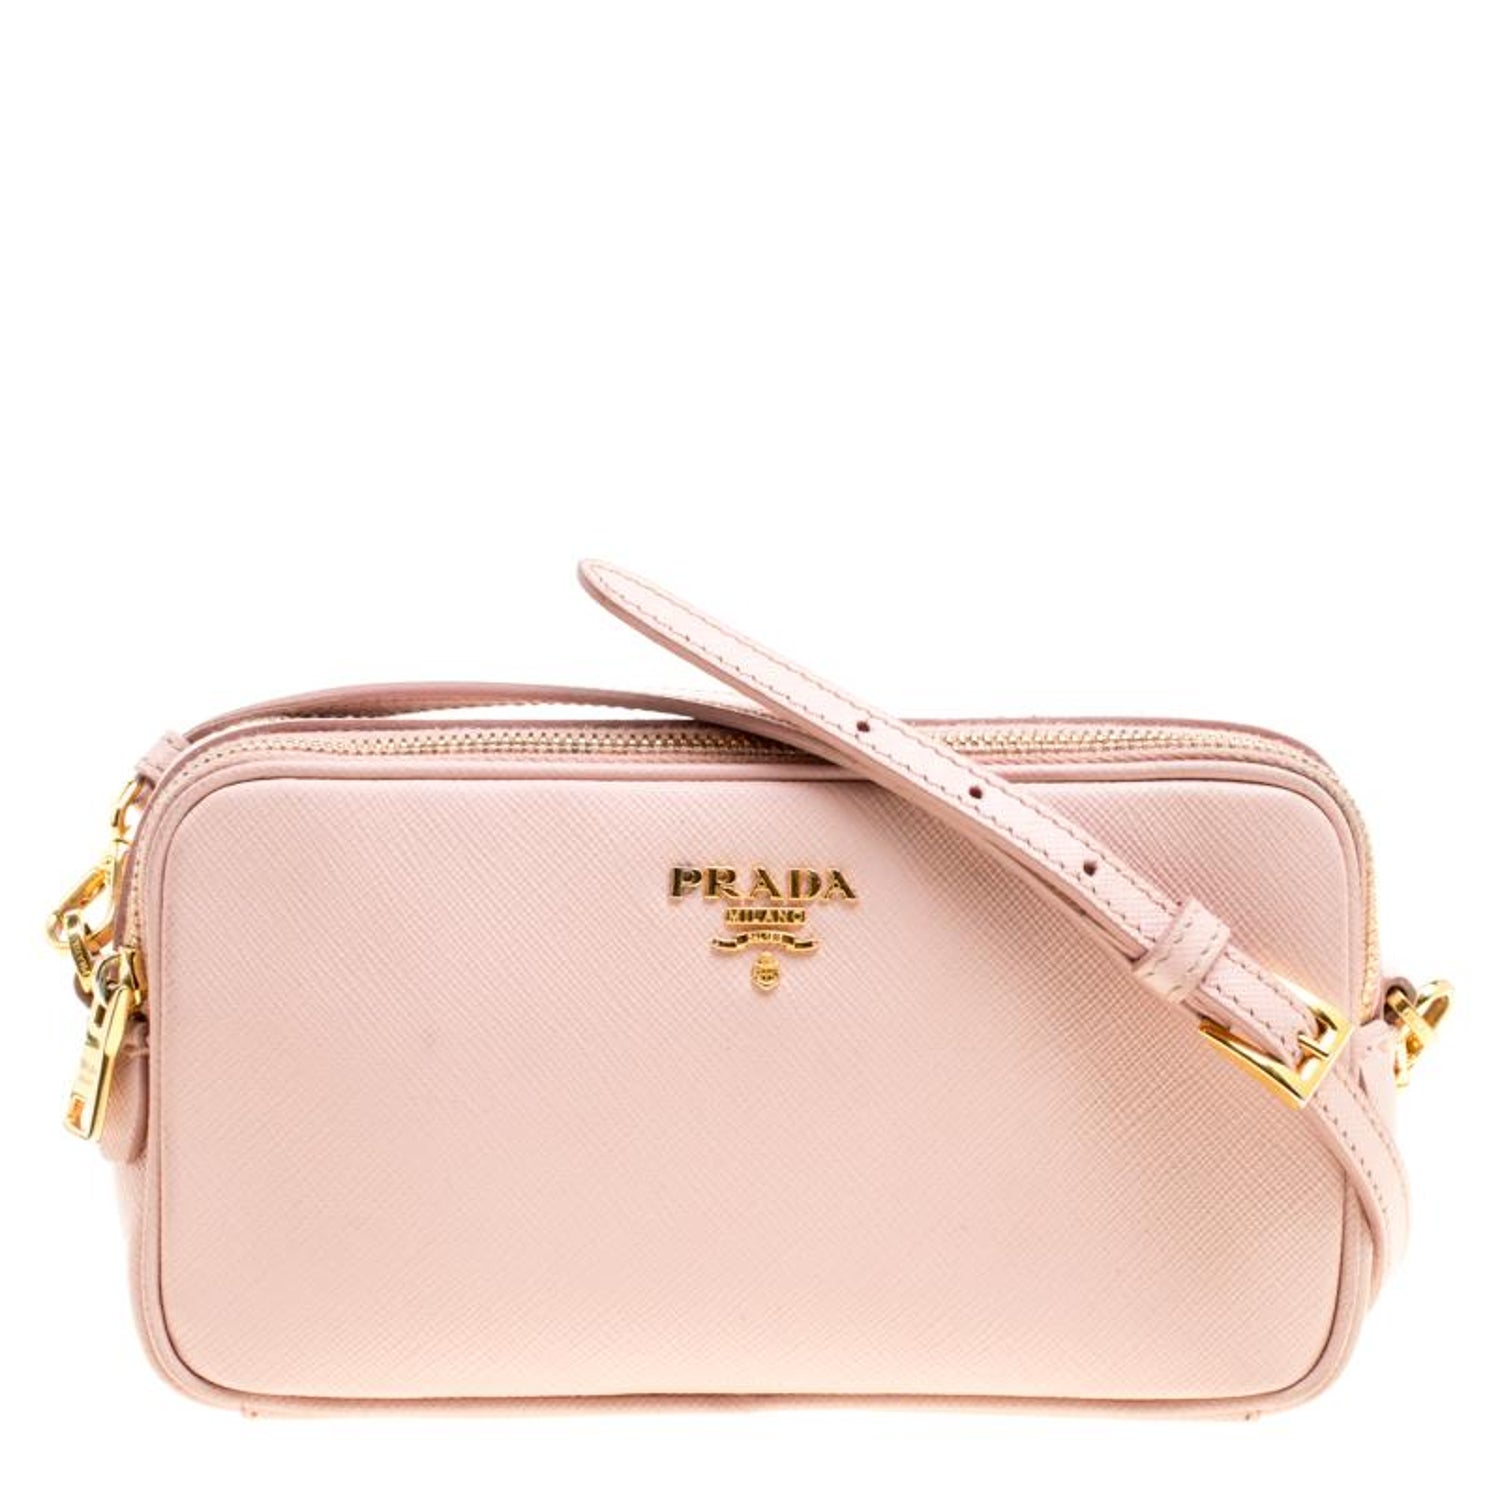 d3db3aa659e7 Prada Blush Pink Saffiano Lux Leather Camera Crossbody Bag For Sale at  1stdibs